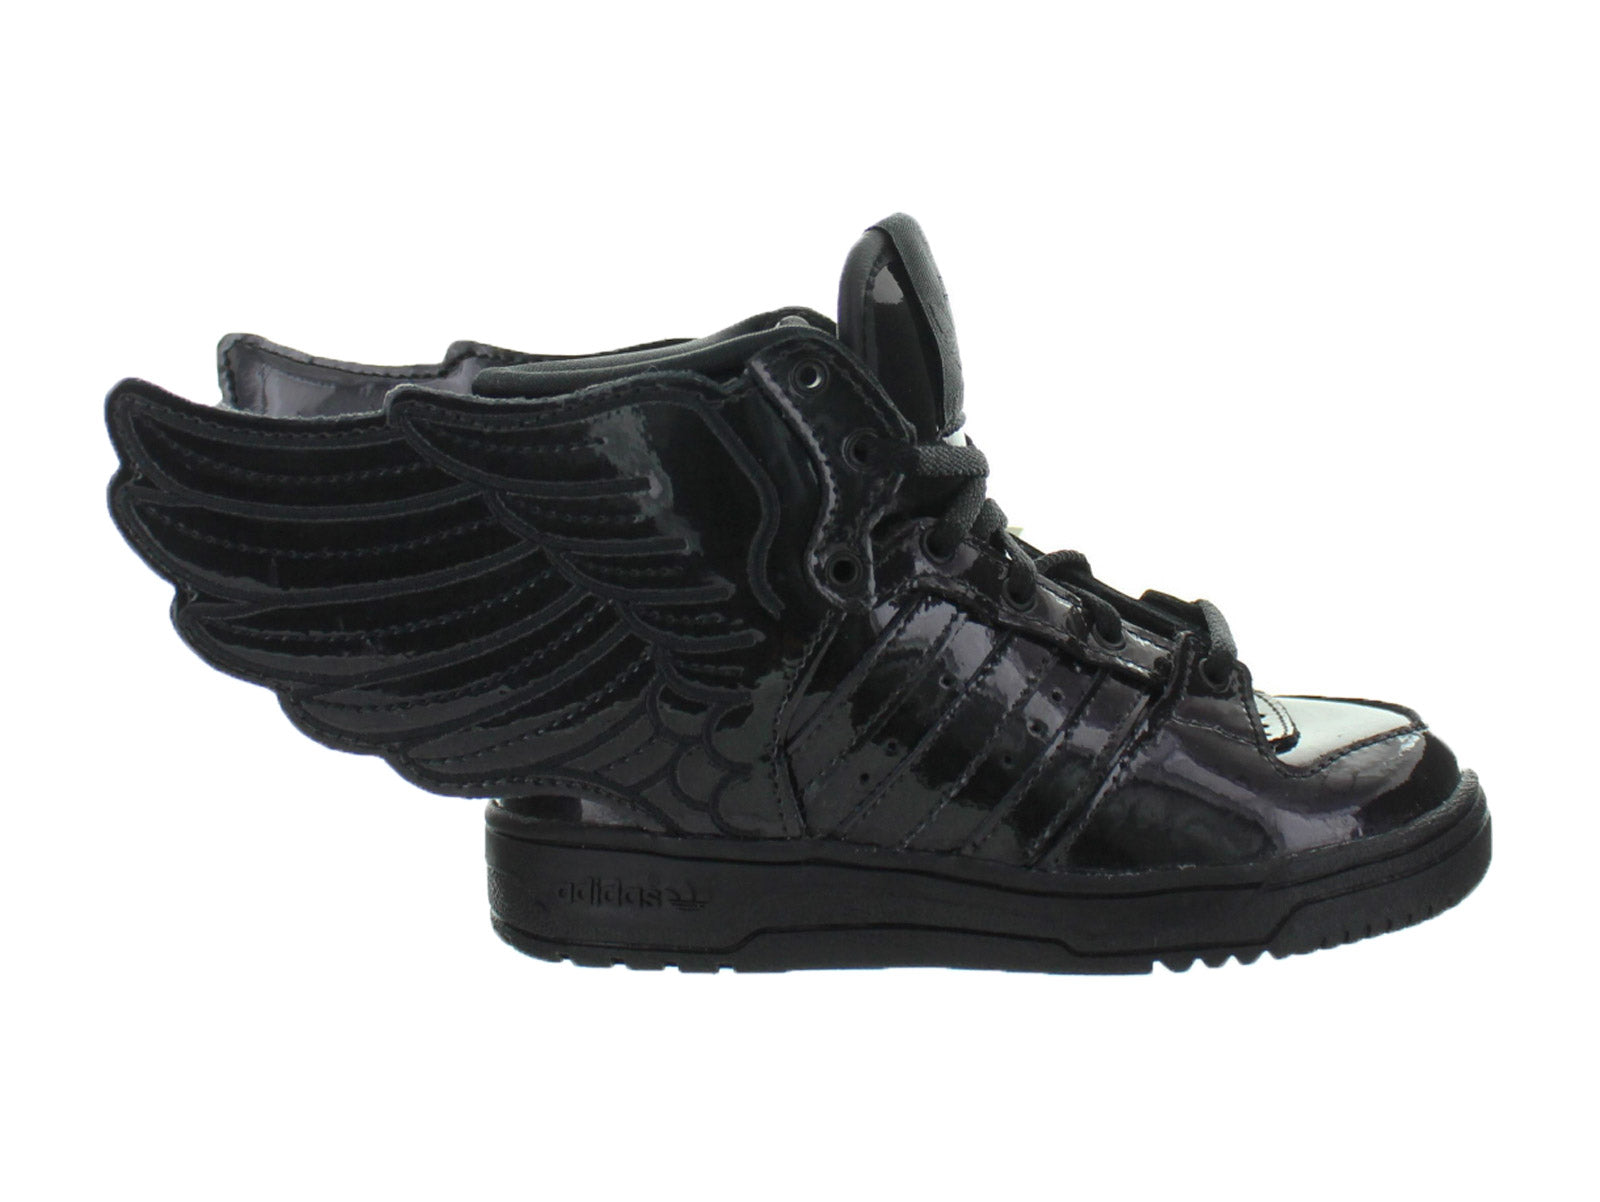 huge selection of e8f24 a4c38 Details about Kids Adidas JS Jeremy Scott Wings 2.0 TD Black Running White  Q23669